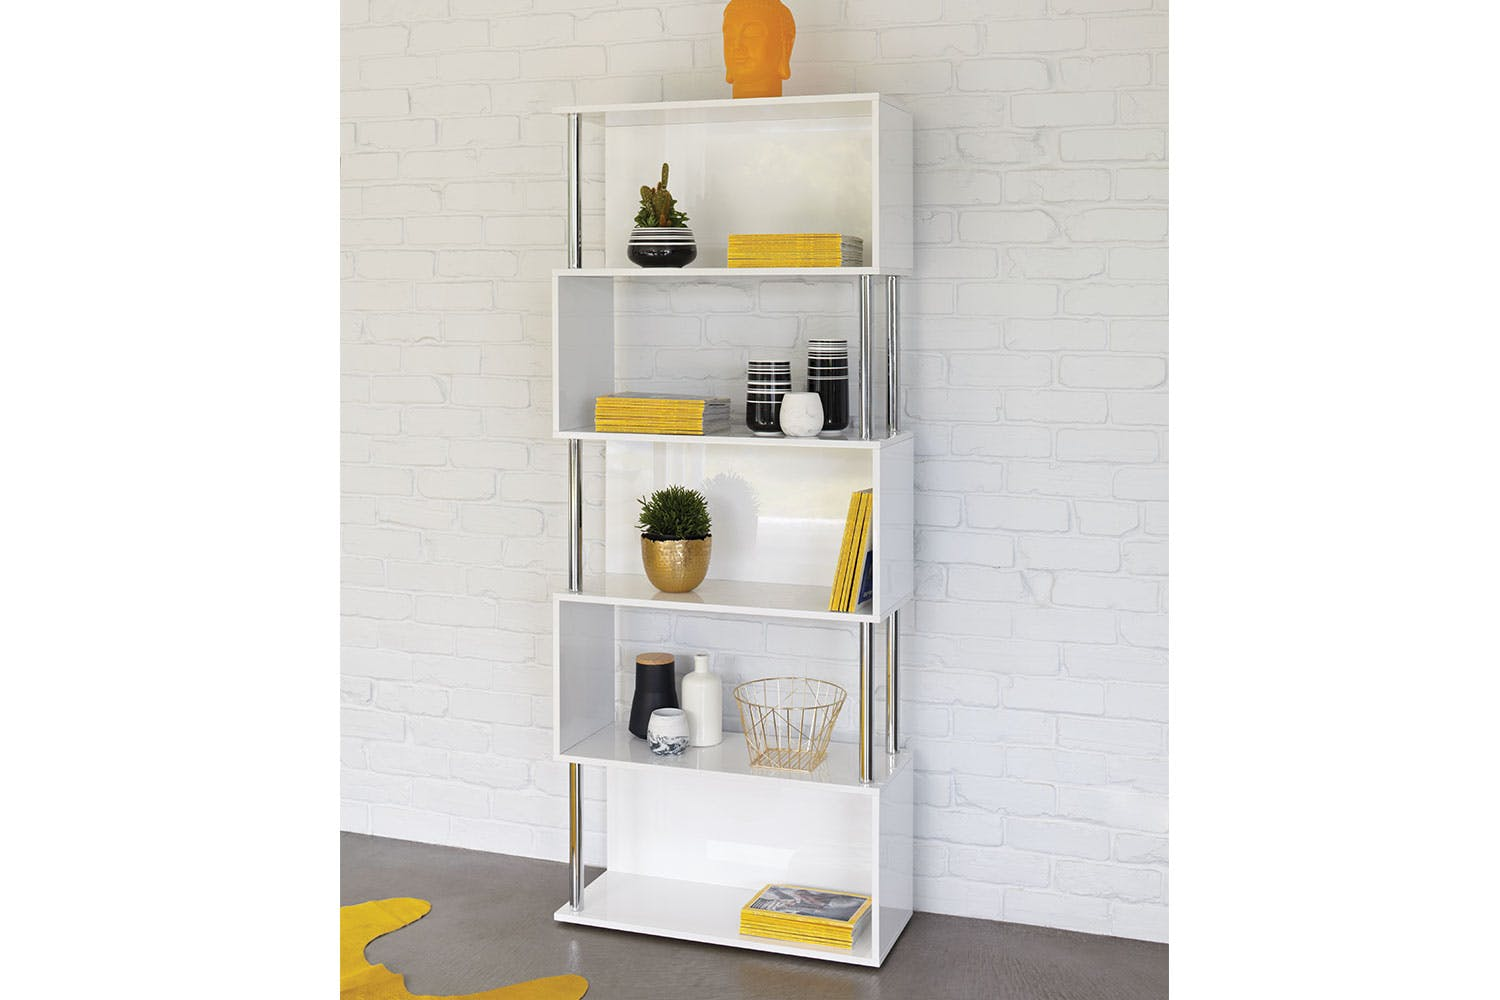 Swivel Shelf by Croxley | Harvey Norman New Zealand